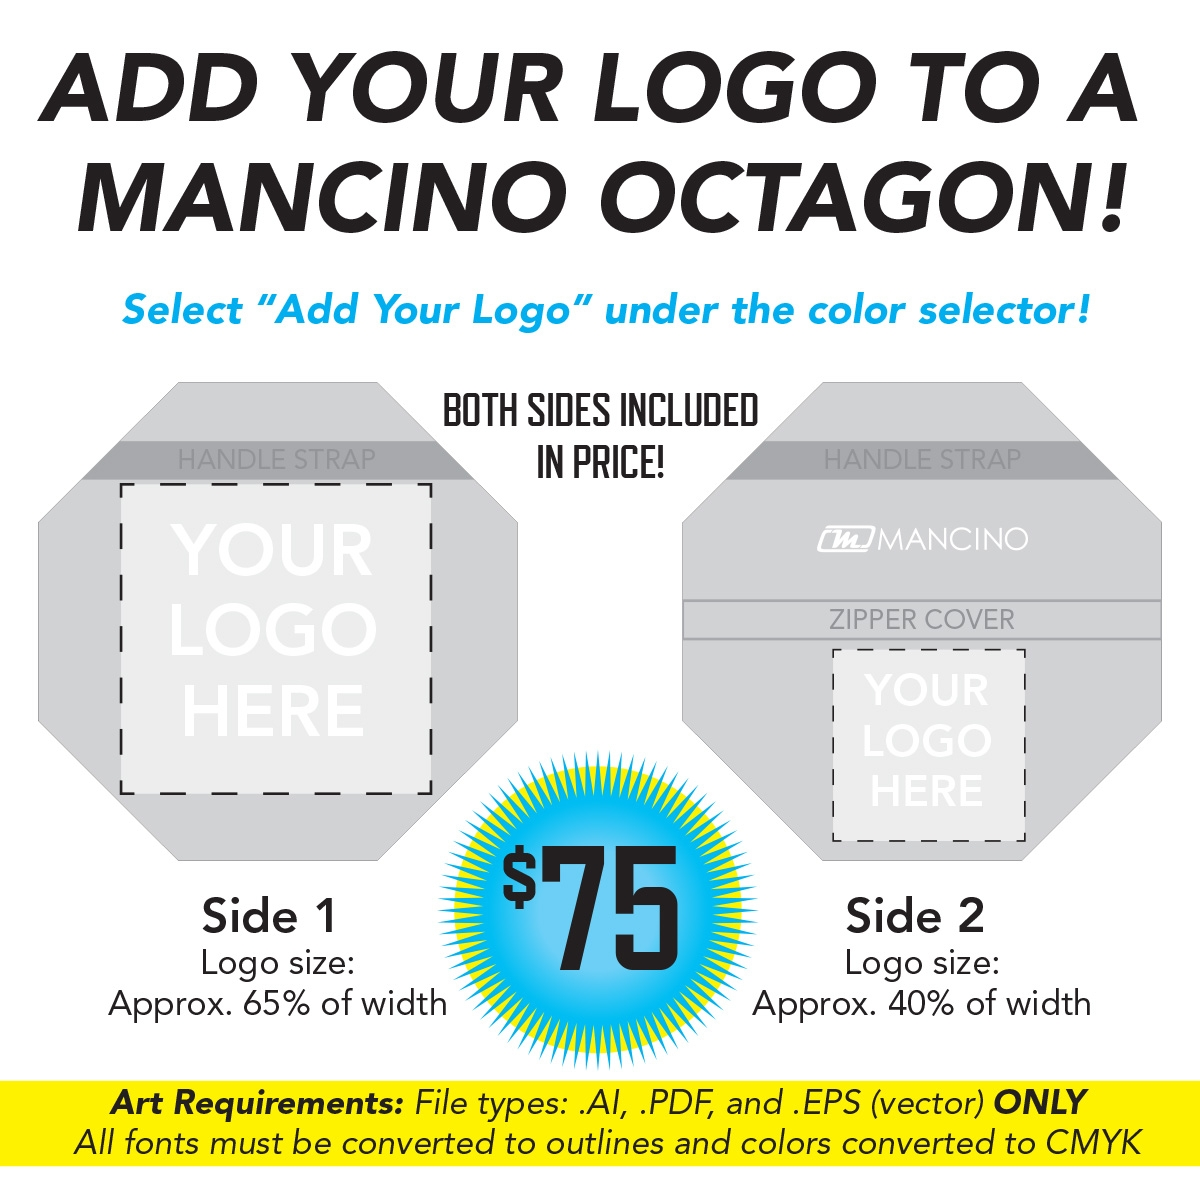 Add your logo to a mancino octagon mat